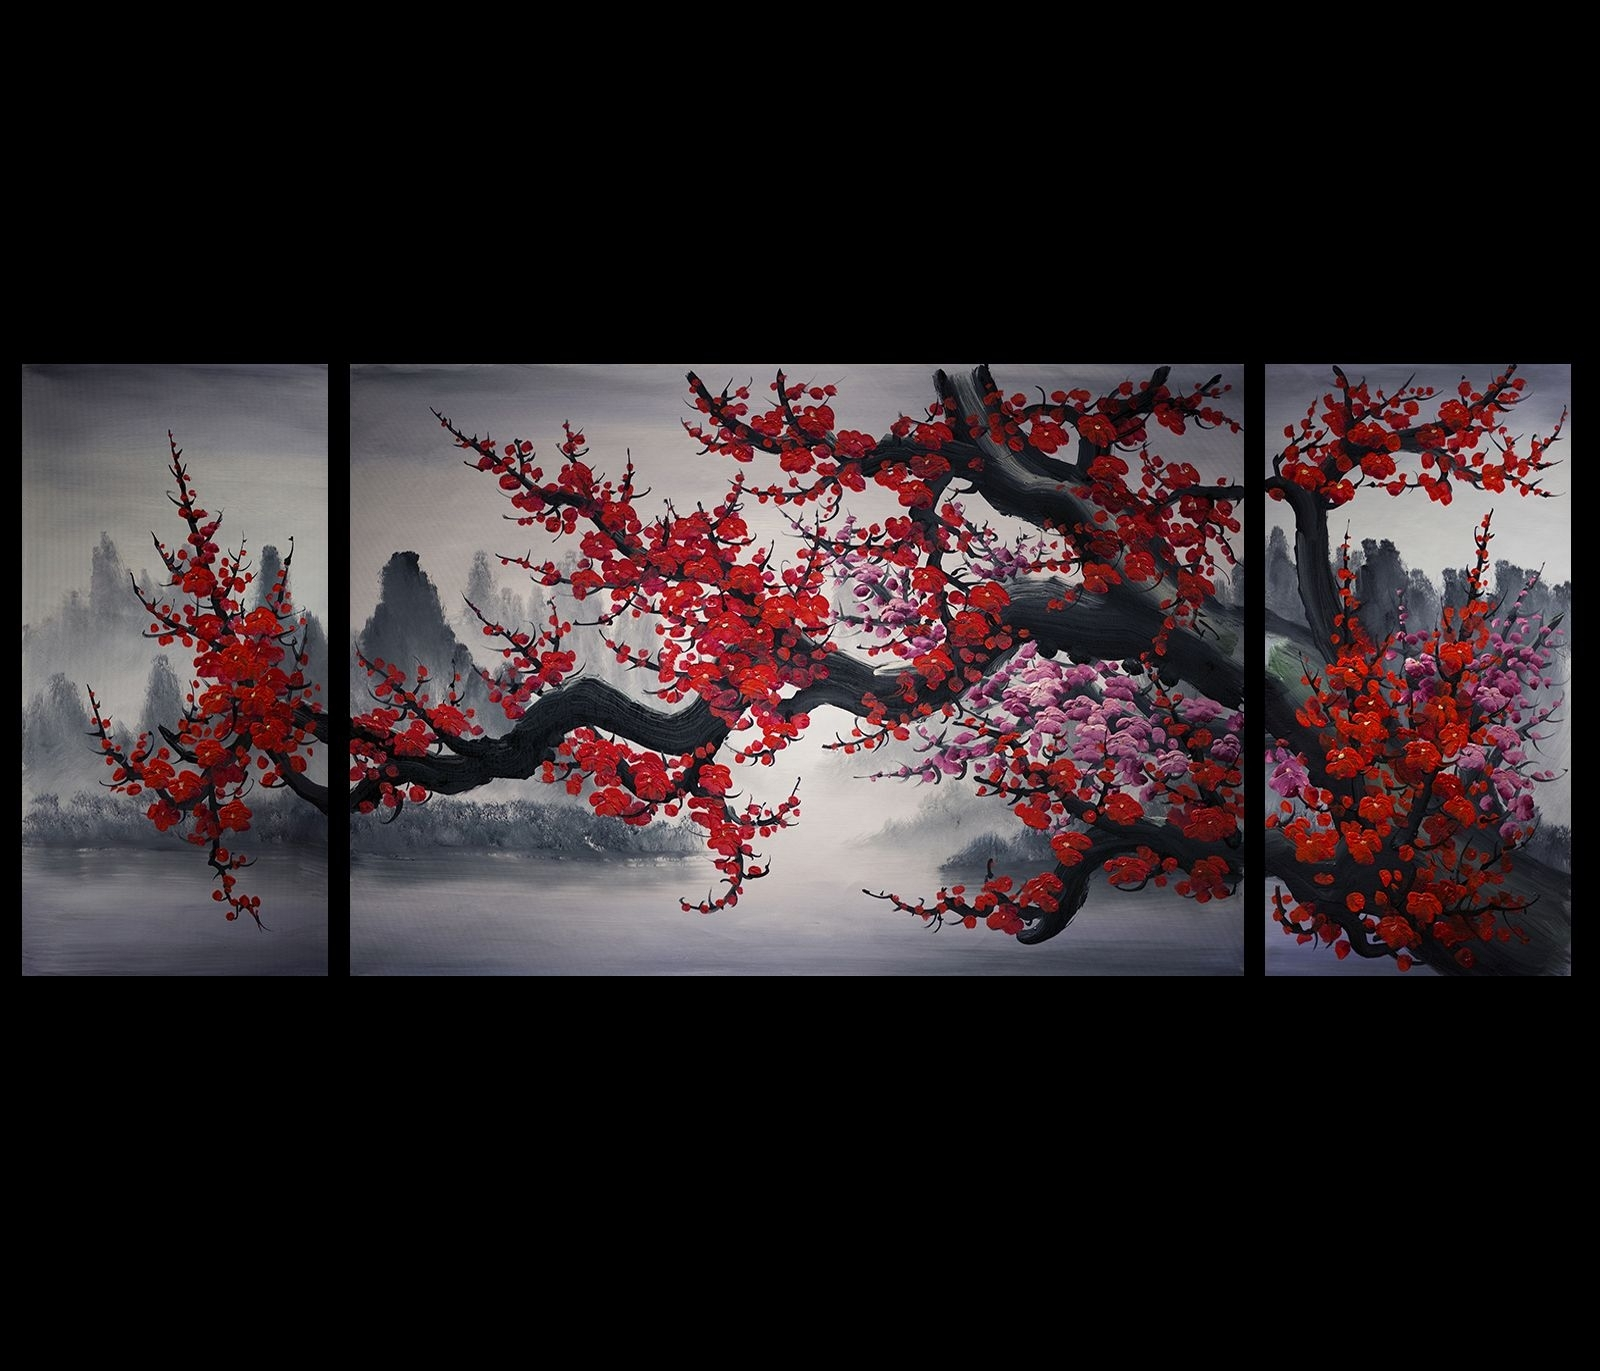 Chinese Cherry Blossom Painting Original Modern Wall Art Decor For Best And Newest Chinese Wall Art (Gallery 4 of 20)